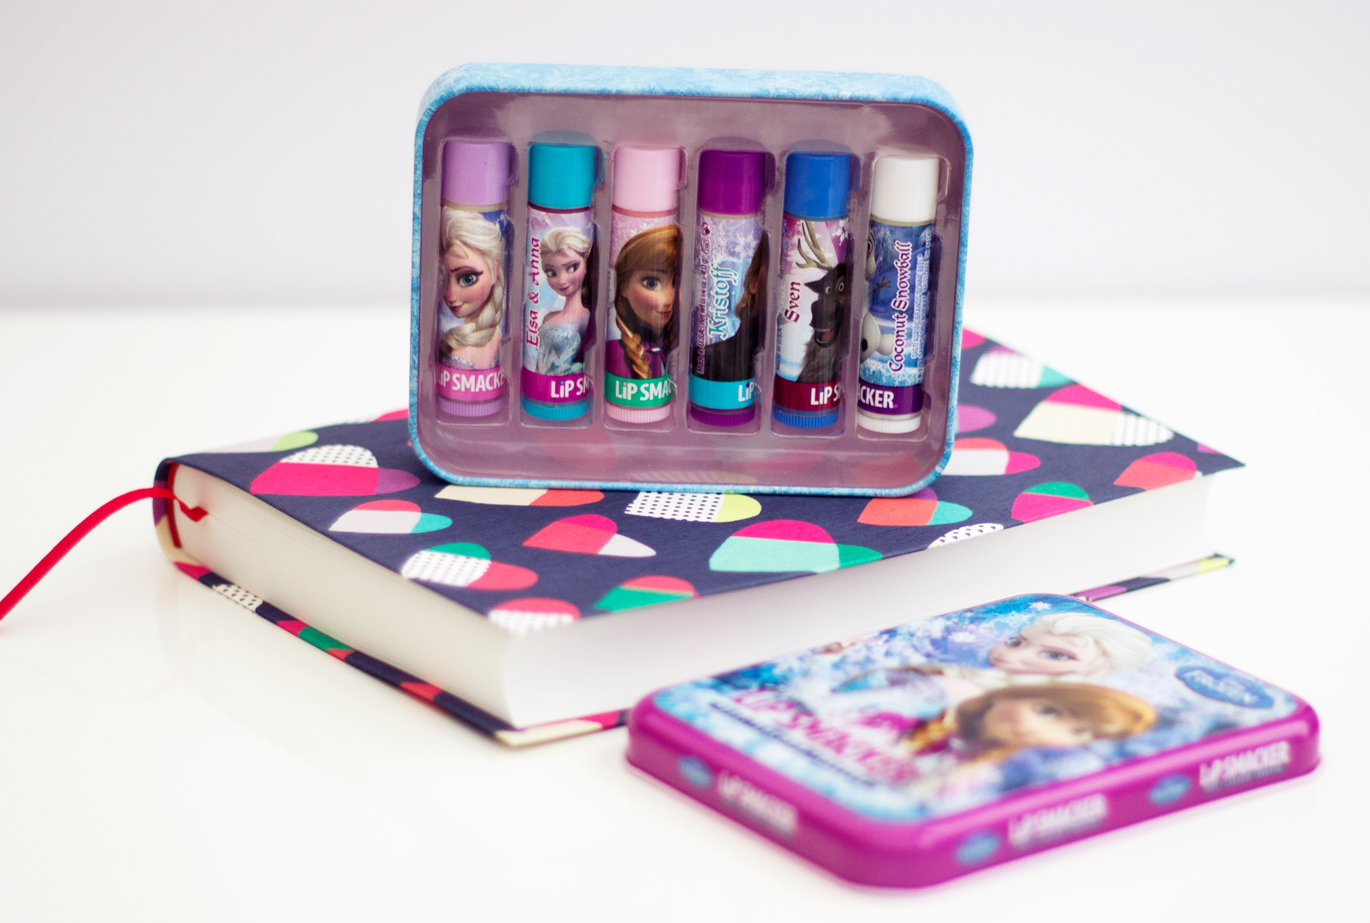 Frozen Lip Smacker, Frozen Lip Balm, Frozen Lip Balm Tin, Frozen Lip Tin, Frozen Elsa Lip Balm, Frozen Anna Lip Balm, Frozen Elsa & Anna Lip Balm